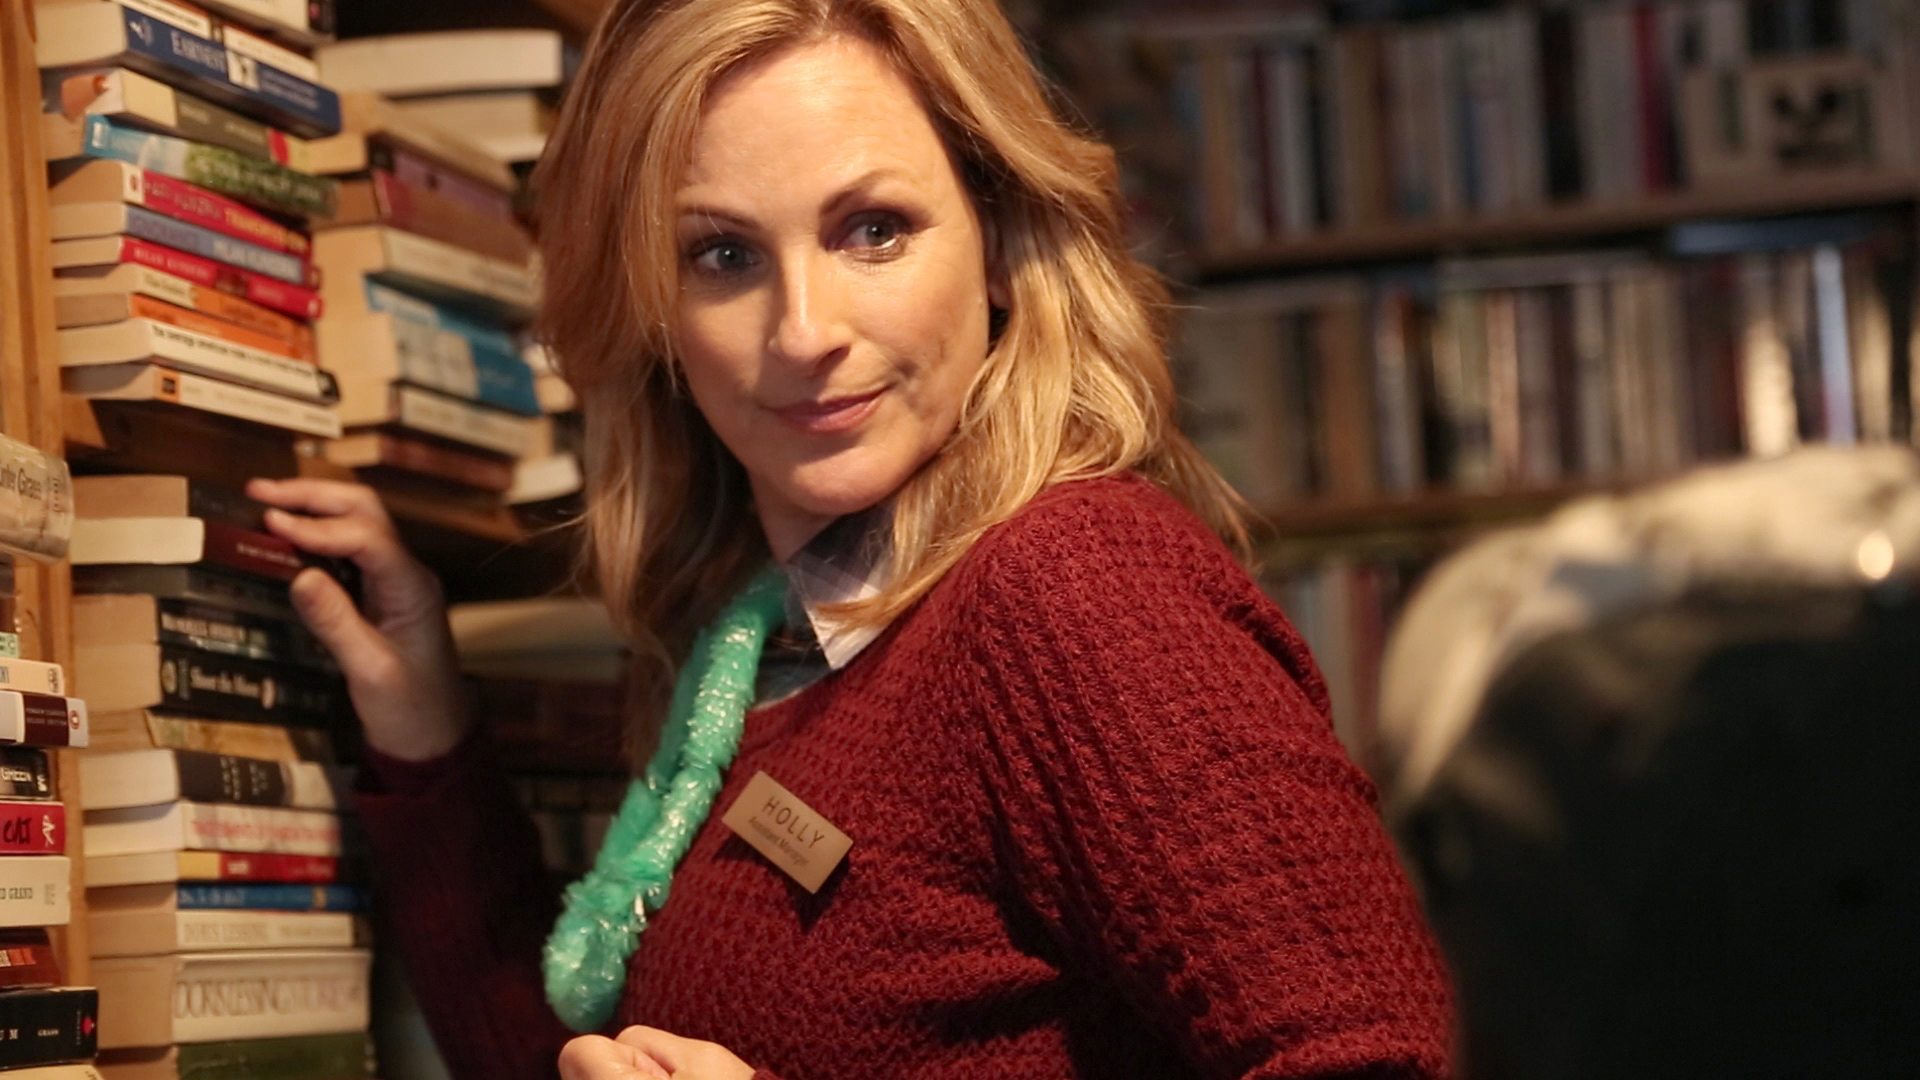 MARLEE MATLIN as Holly